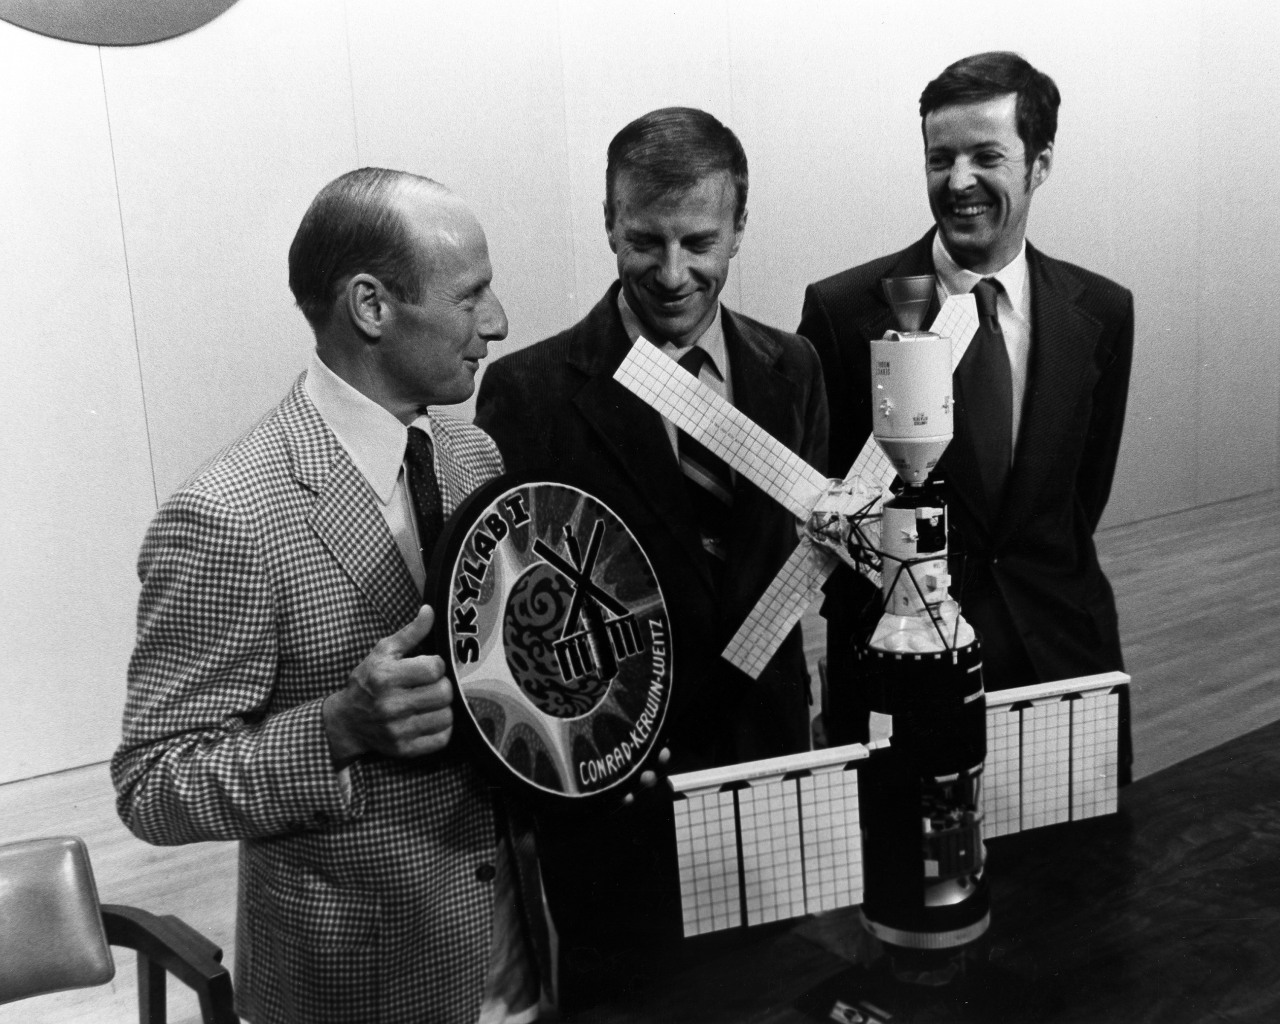 The Prime Crew for the NASA's First Manned Skylab Mission Meet the Press in a Final Briefing Prior to Isolation for the Coming Launch of Skylab II, 05/01/1973  Skylab, the first American space station, was launched unmanned on May 14, 1973.  This photo is of the prime crew for the first manned Skylab mission at a final briefing prior to isolation for the coming launch, which occurred on May 24, 1973.  The astronauts are (L. to R.) Charles Conrad Jr., Commander, Paul J. Weitz, Pilot, and Dr. Joseph P. Kerwin, Science Pilot.